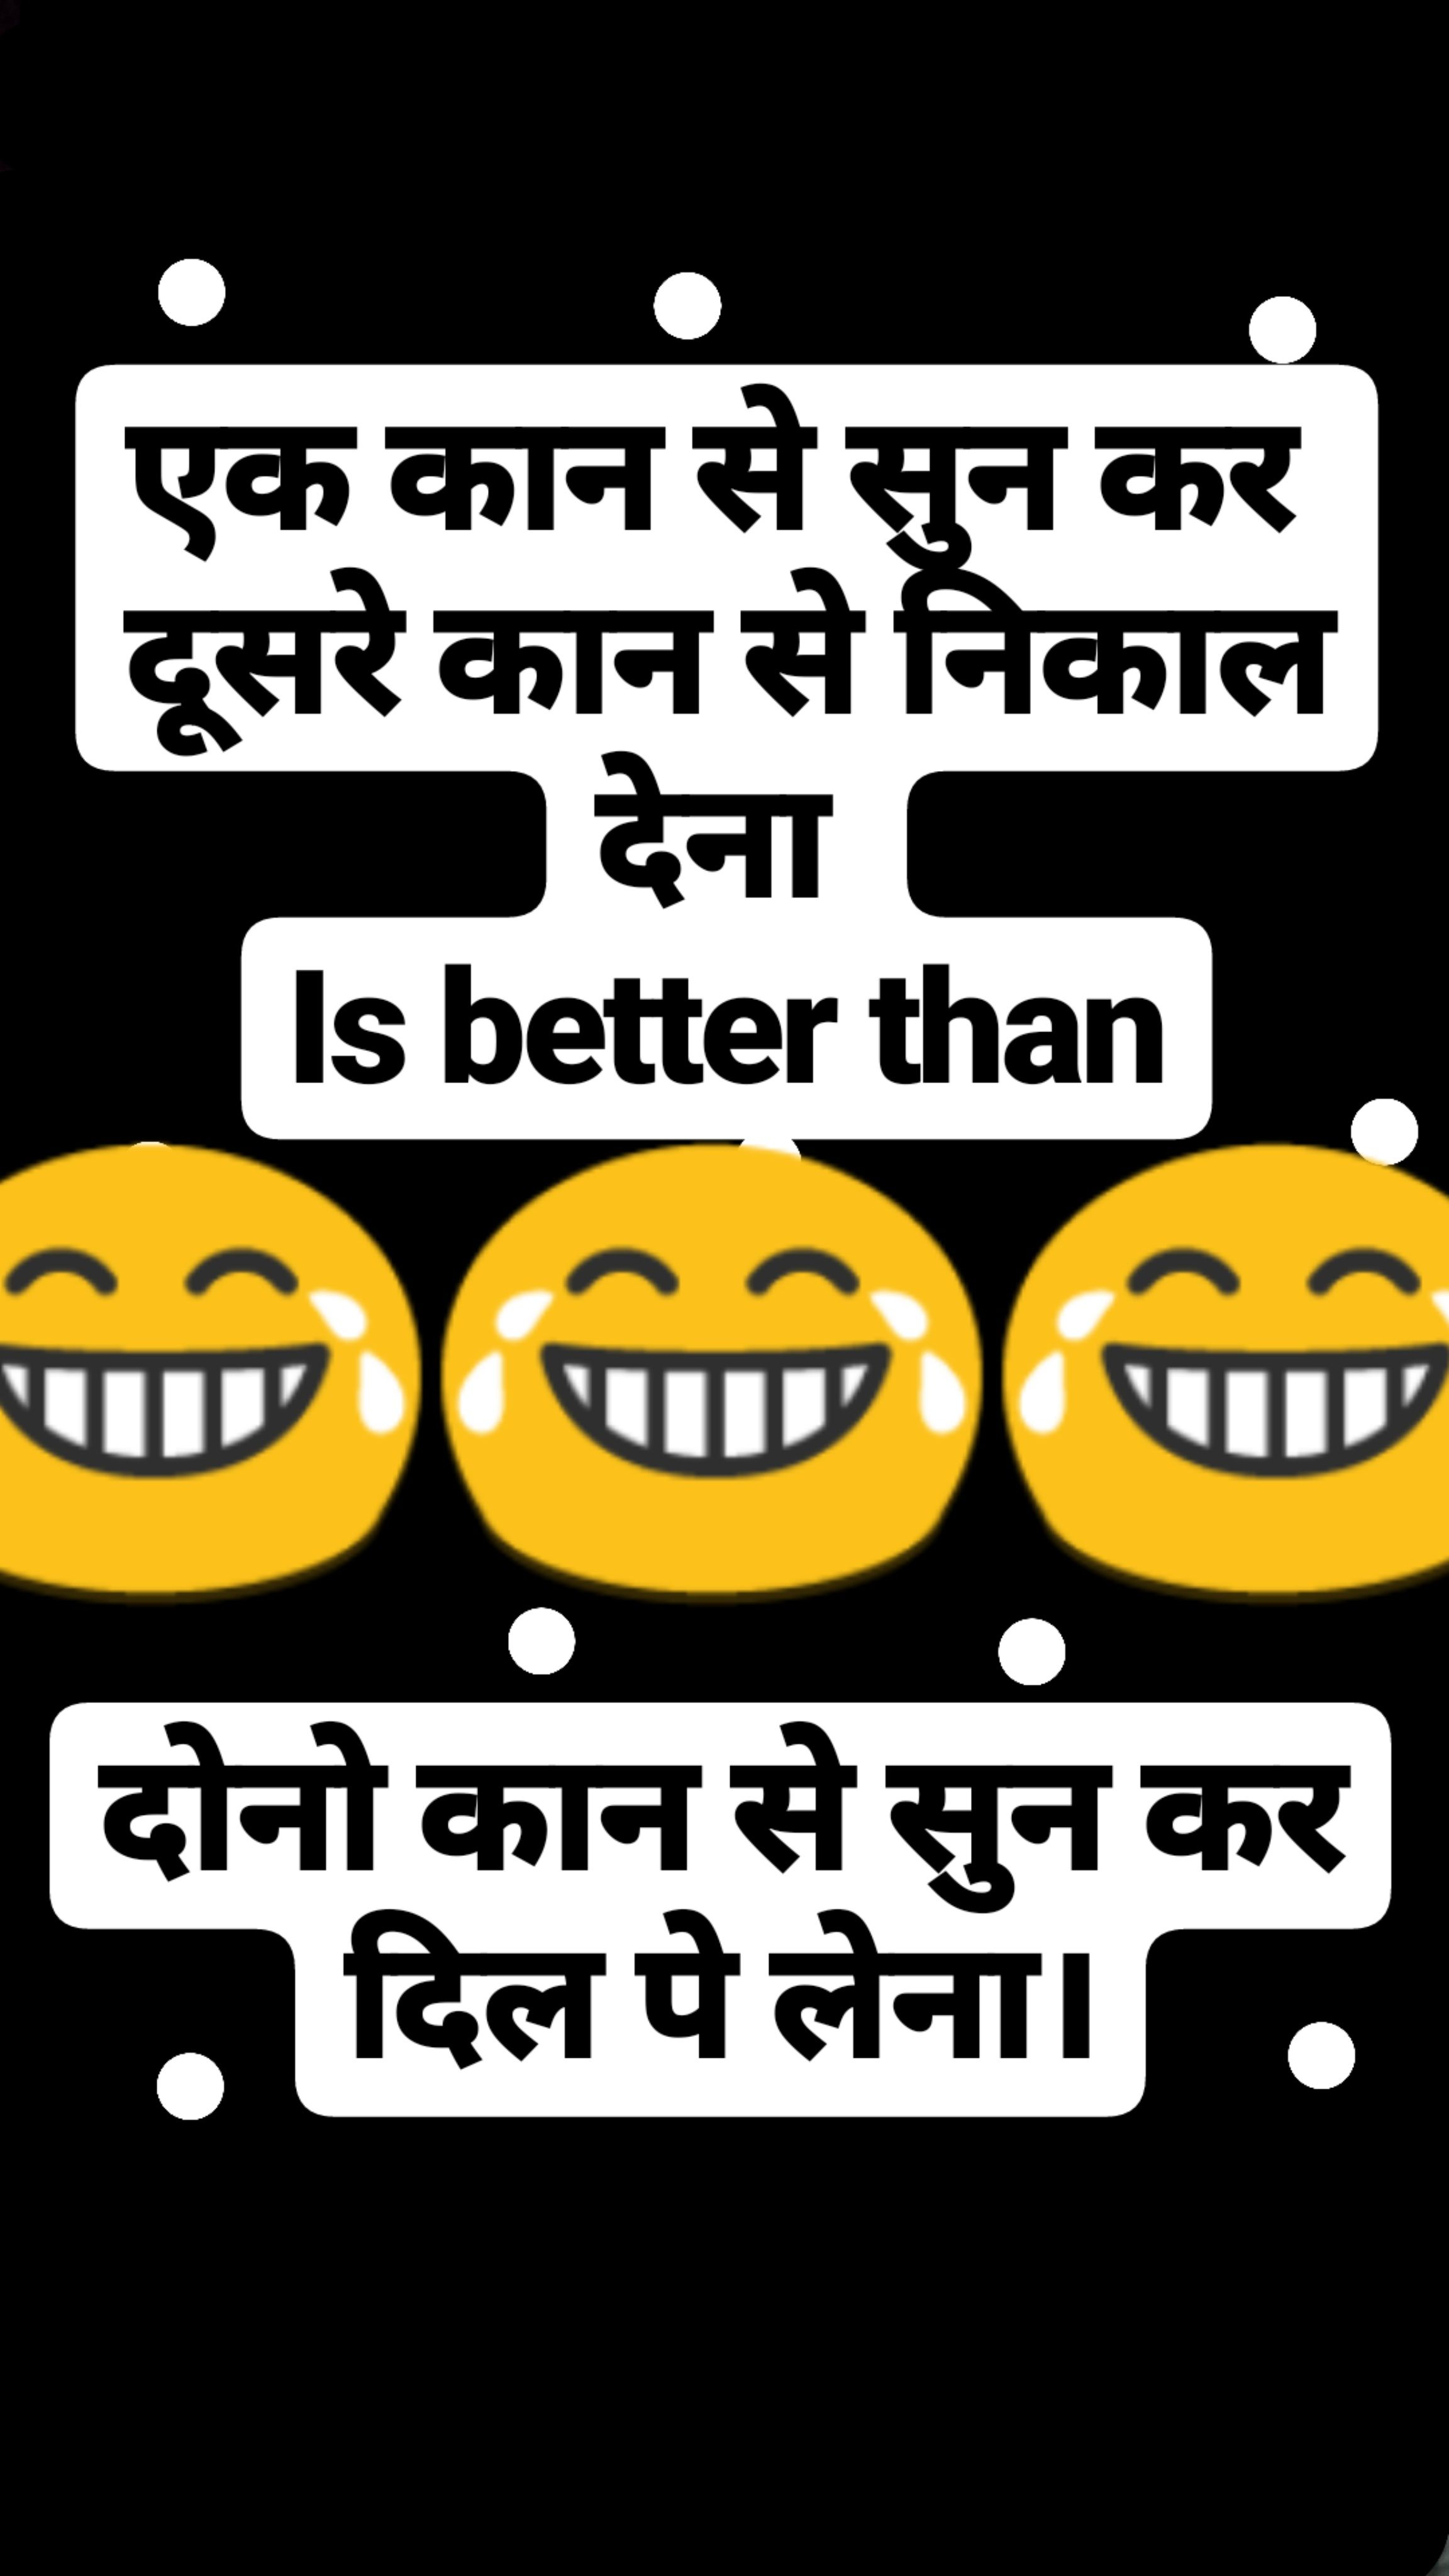 Funny Motivational Quotes In Hindi : funny, motivational, quotes, hindi, Funny, Quotes, Images, Hindi